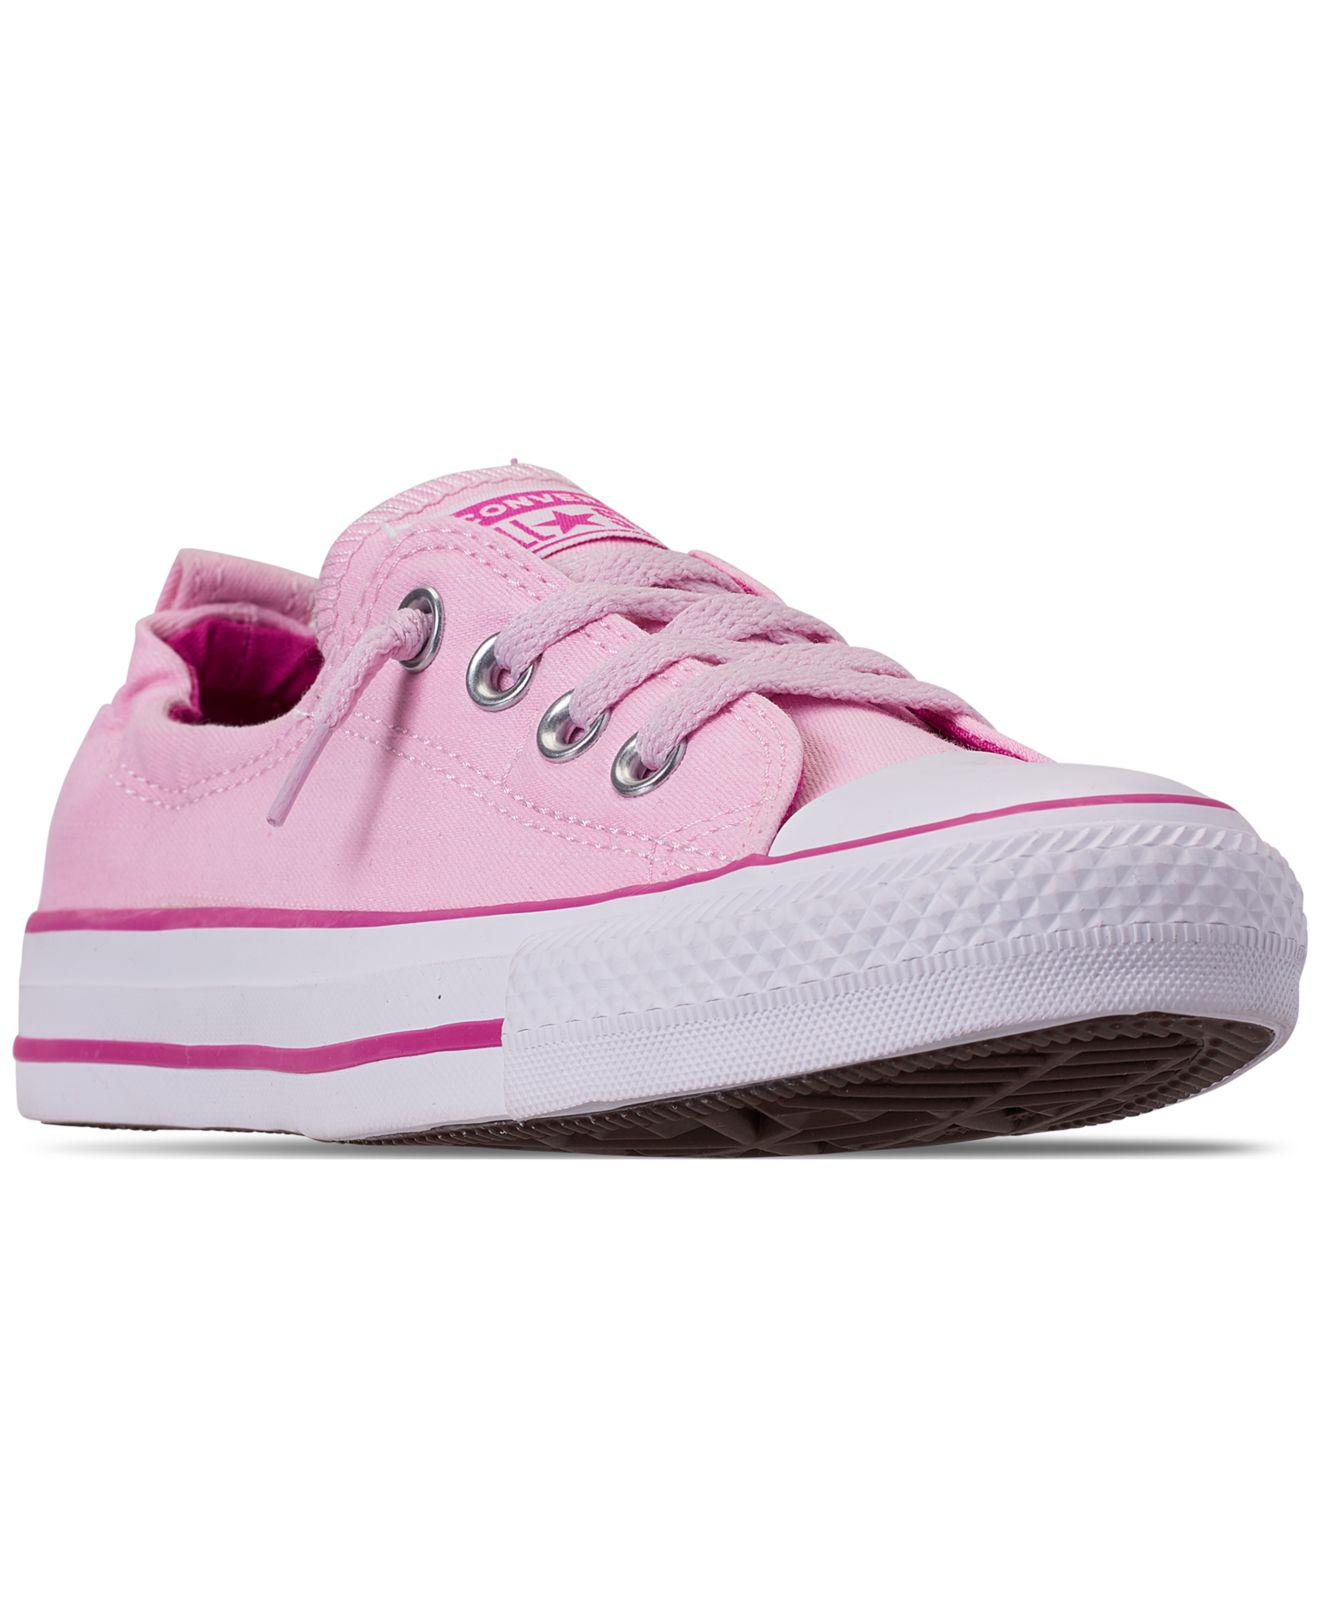 0ed446fe929 Converse. Pink Chuck Taylor All Star Shoreline Slip-on Sneaker (women)